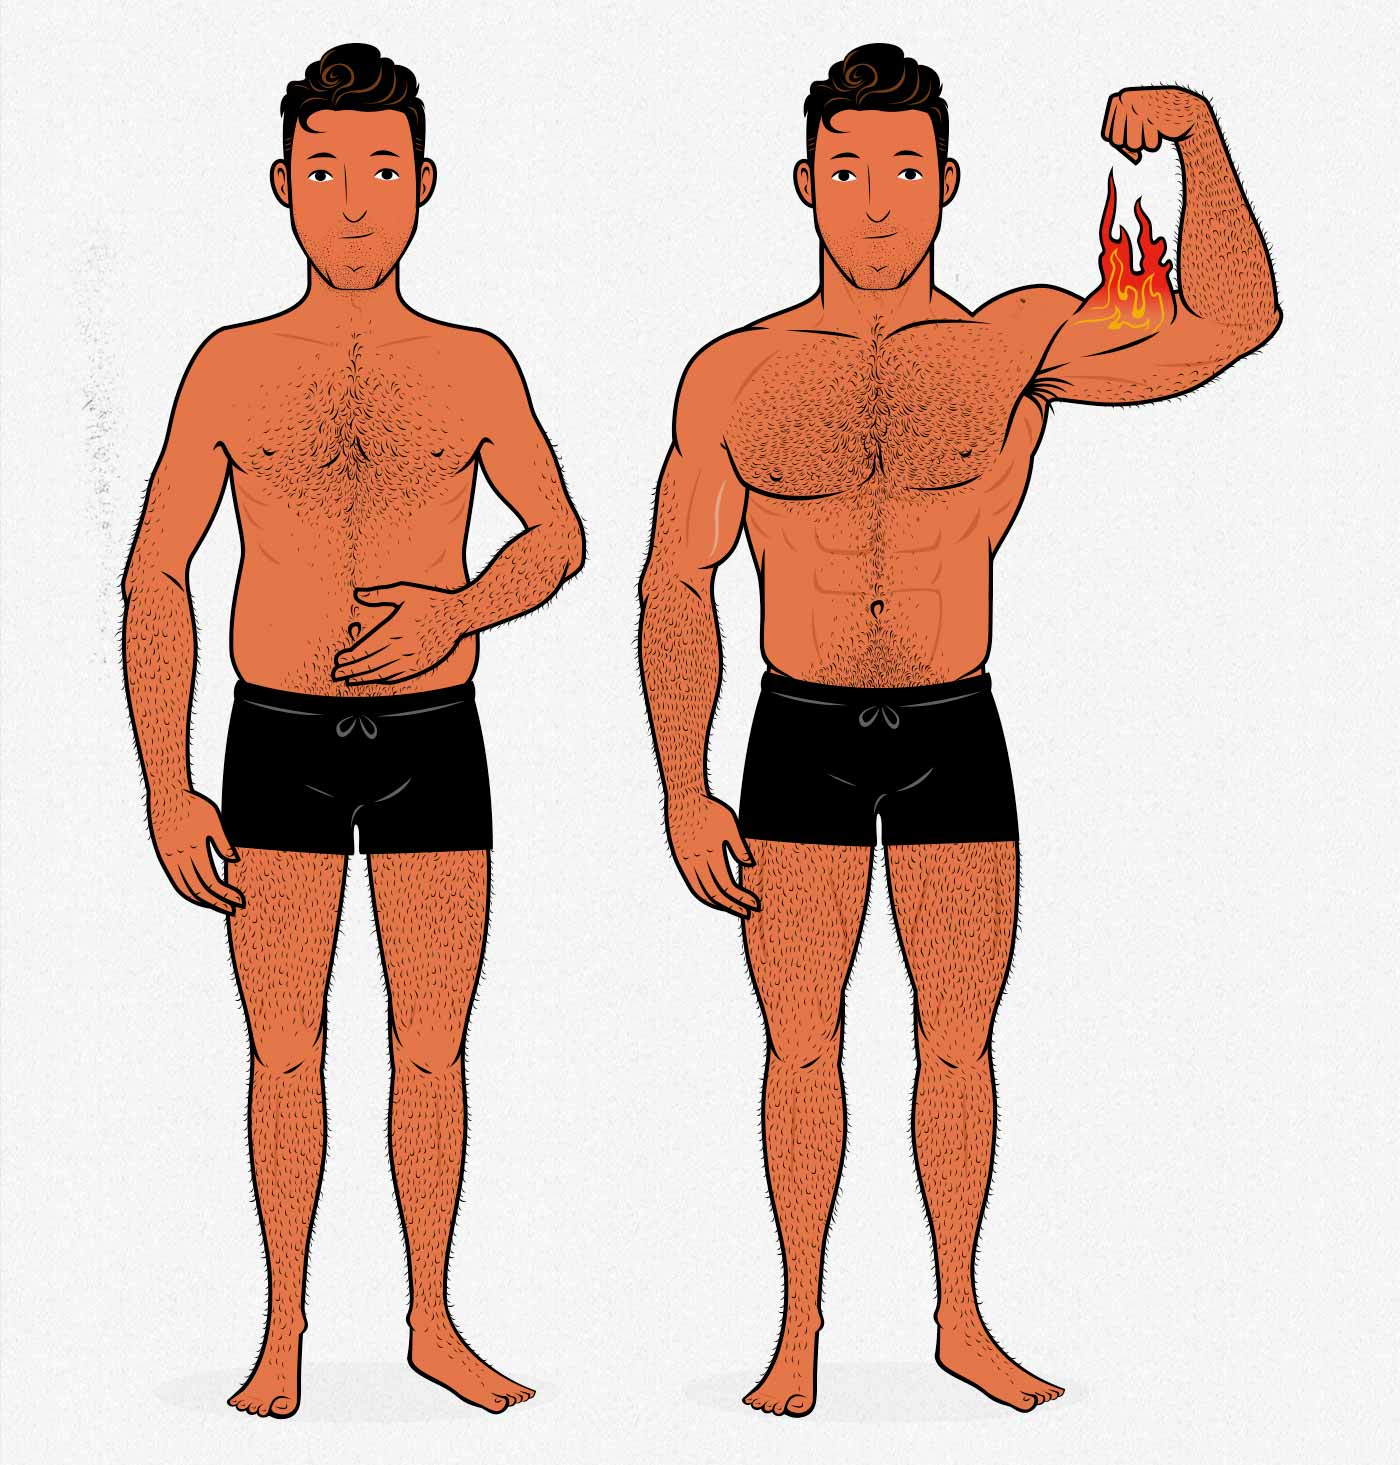 Illustration showing a man bulking leanly, losing fat as he gains weight.